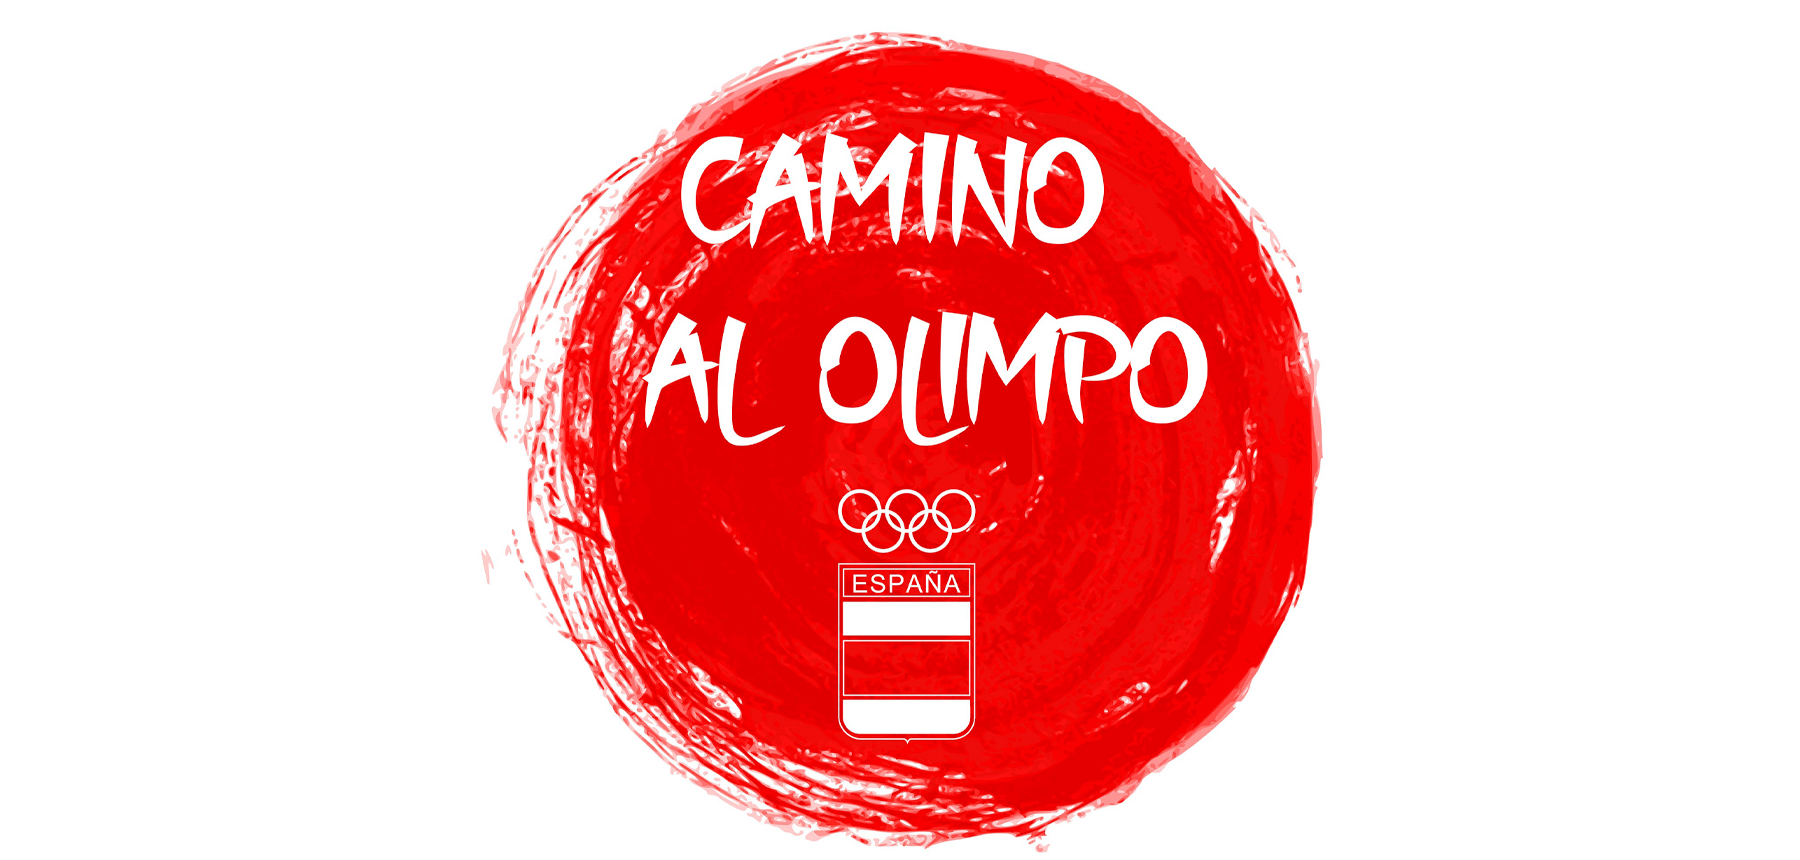 https://www.coe.es/wp-content/uploads/2021/04/camino-al-olimpo-opt-768x367.png